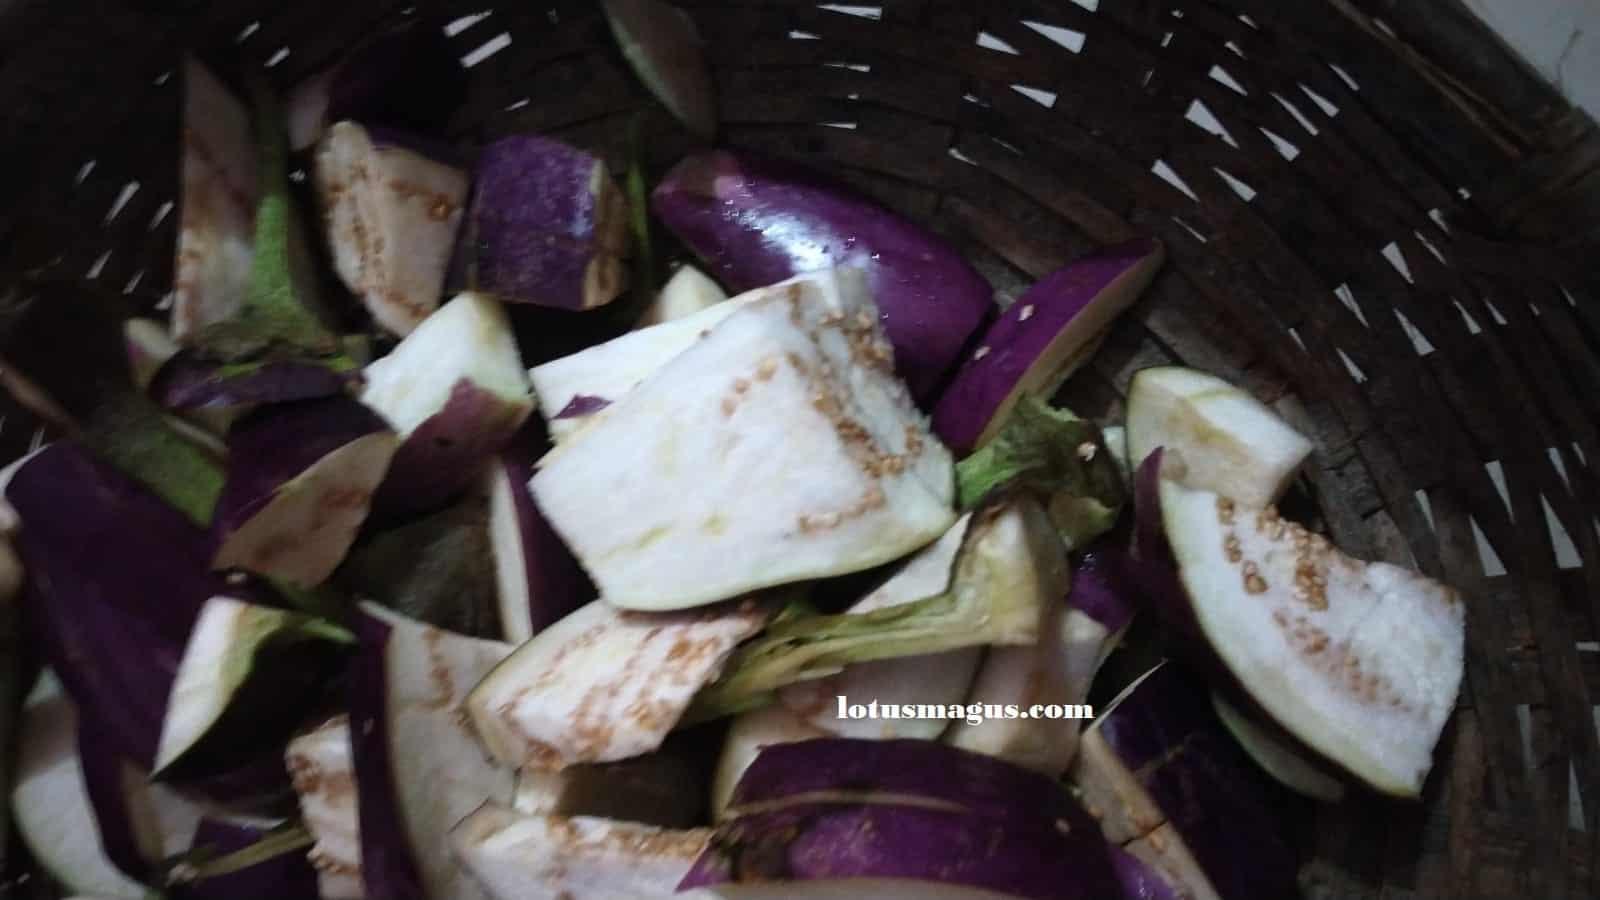 How do I know if my eggplant has gone bad